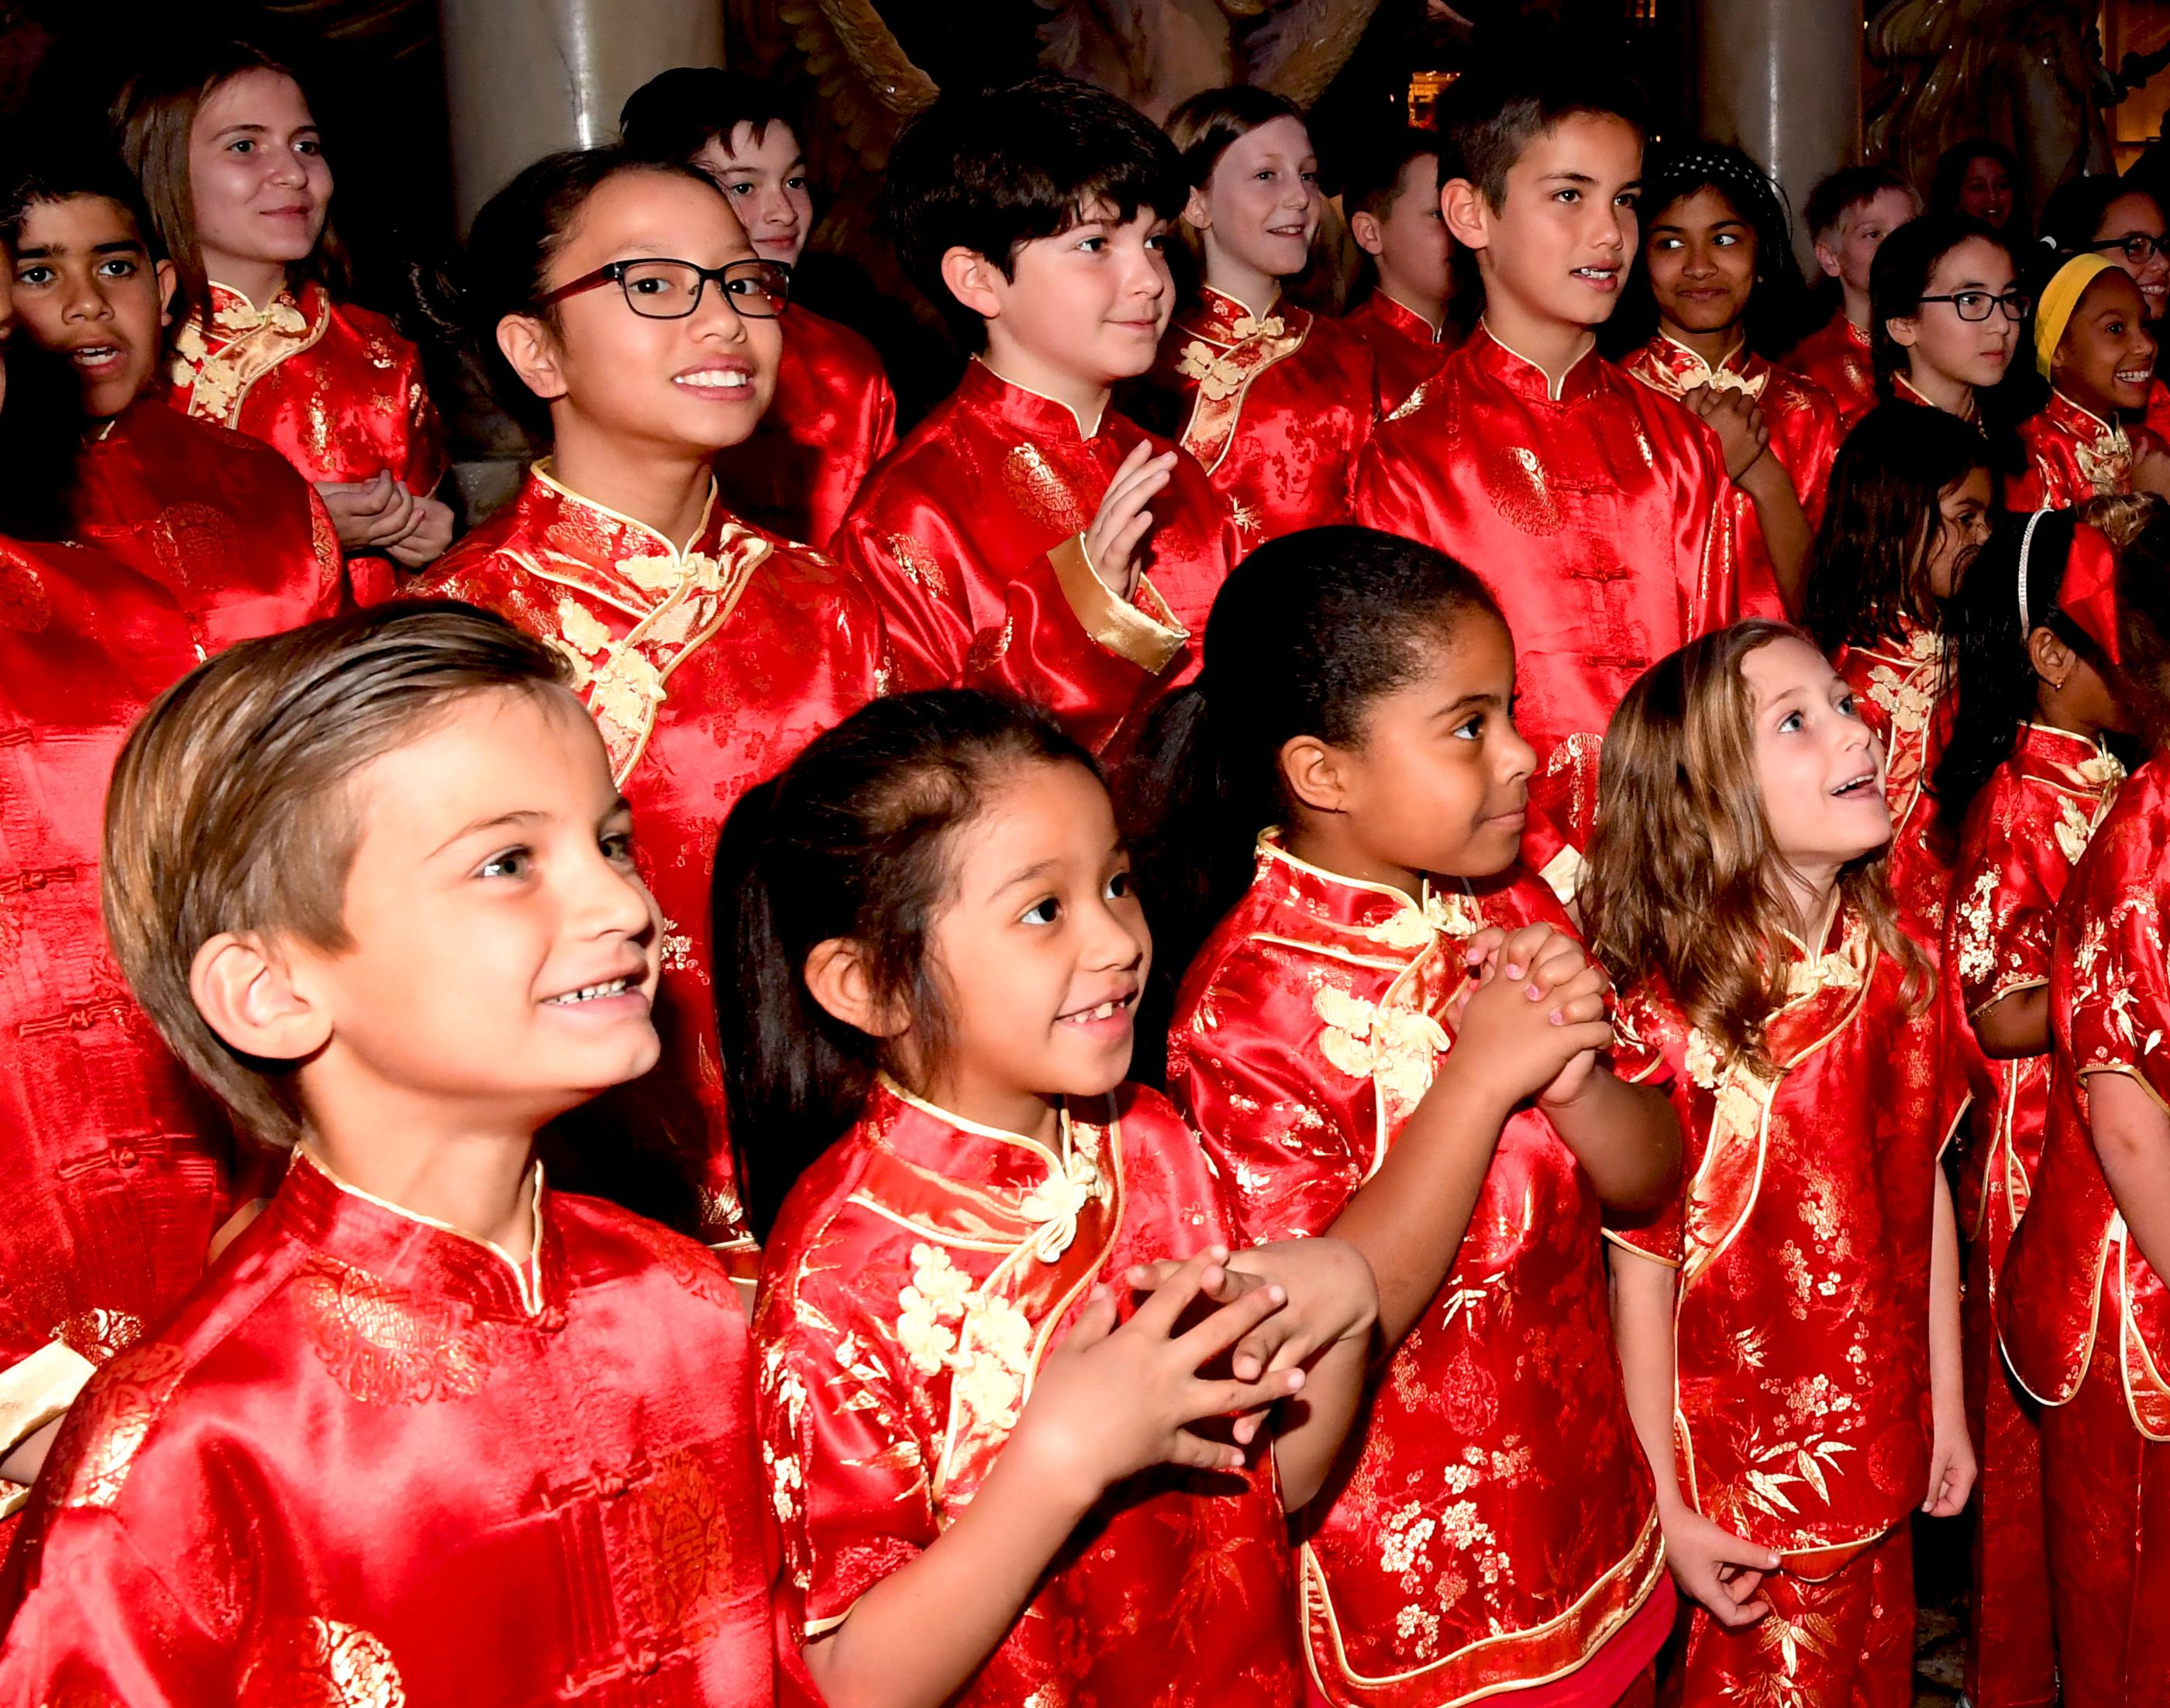 Meadows School 22nd Annual Dragon Parade in honor of Chinese New Year, the Year of the Dog, at Caesars Forum Shops. At the end of the parade students are treated to a surprise Year of the Dog cake from Freeds Bakery. Thursday, February 16, 2018. CREDIT: Glenn Pinkerton/Las Vegas News Bureau